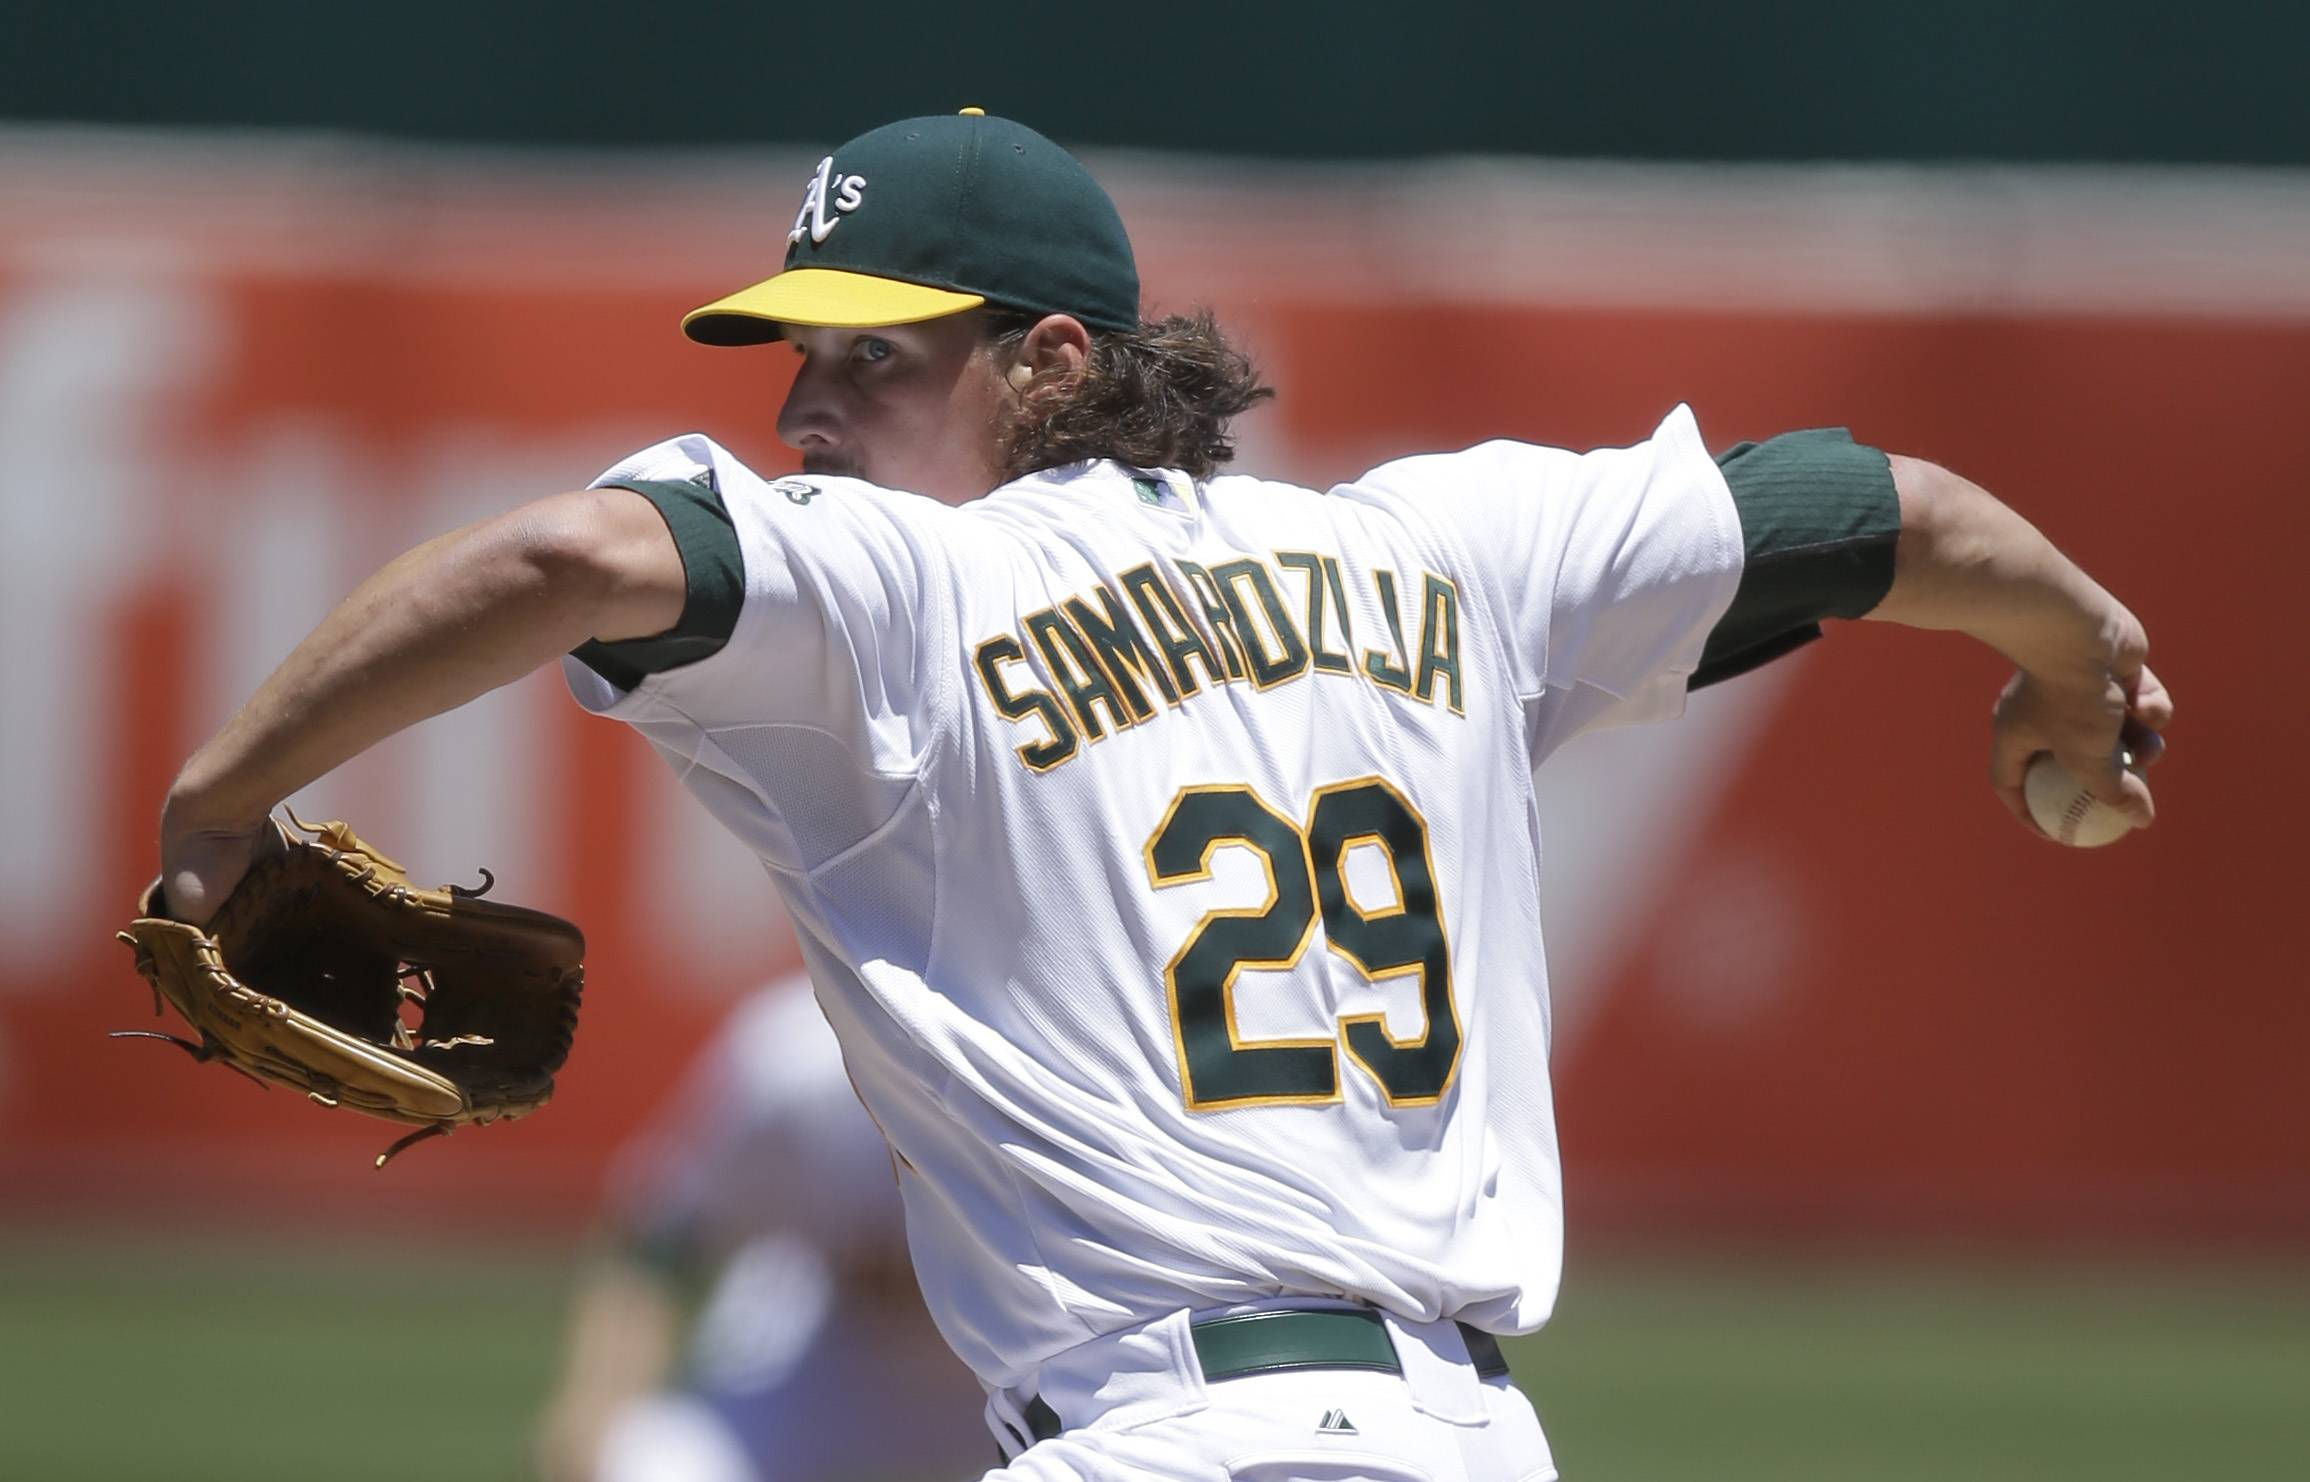 Samardzija deserves to play in All-Star Game